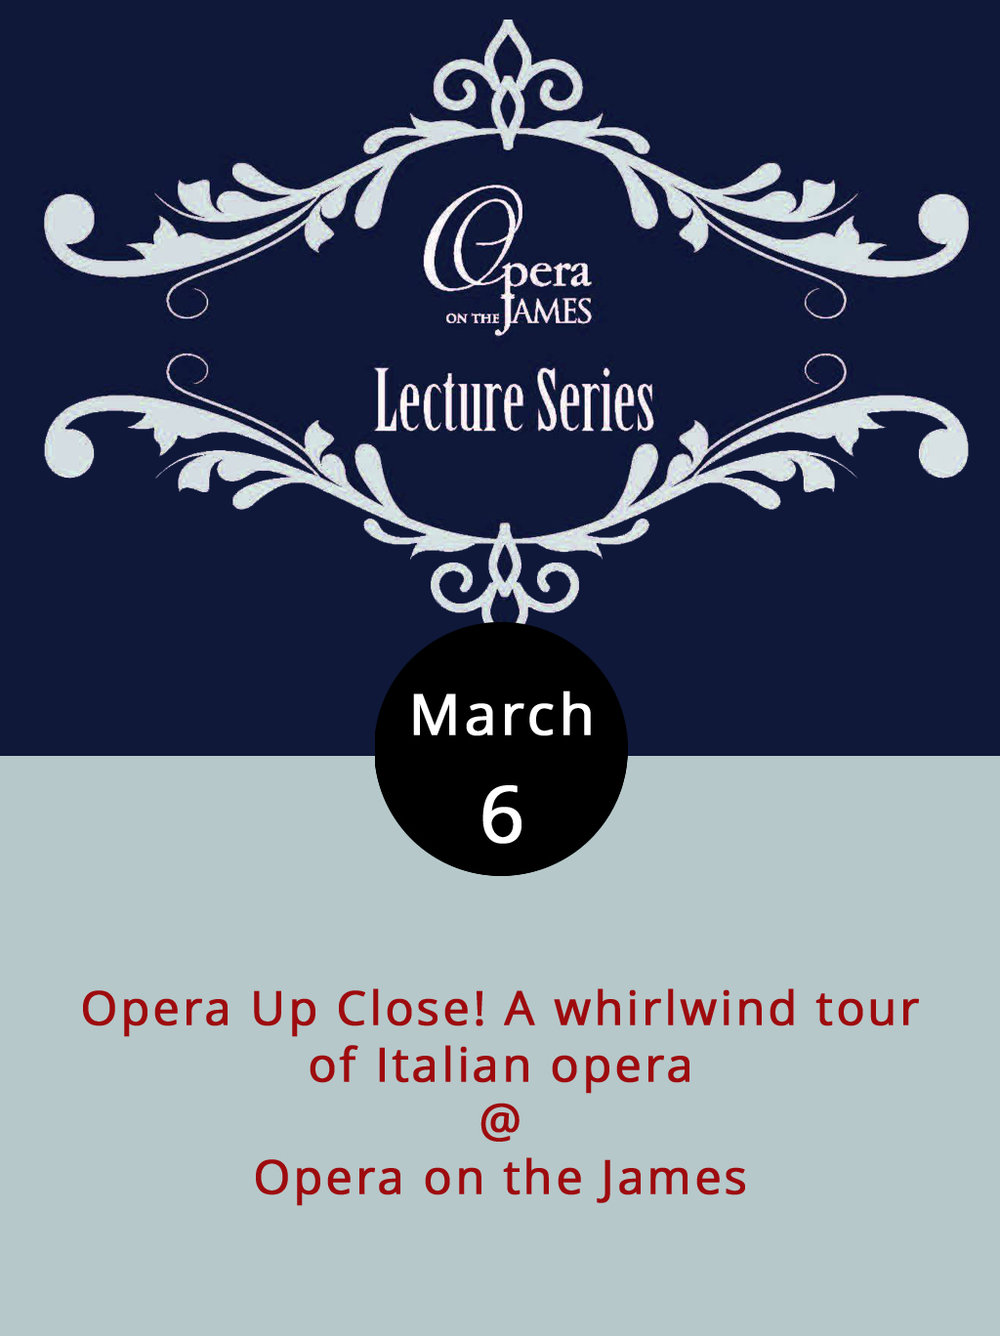 Opera is one of those things that much easier to enjoy when, like a lot of thing, you've got a little bit of knowledge to work with. Opera on the James is currently gearing up for a big production of Verdi's  Fallstaff  on March 31 and April 2 (for tix click  here ). Since it's an Italian opera (a lot of the best ones are), they've scheduled a series of preparatory talks throughout the month, starting with an Opera Up Close overview of Italian opera. Professor Bettye Chambers, who teaches at Georgetown, will do the presenting this evening from 7-8:30 p.m. at Opera on the James (701 Main St.). It's free and open to the public, as is the reception afterward. Call (434) 528-3397 for more info.